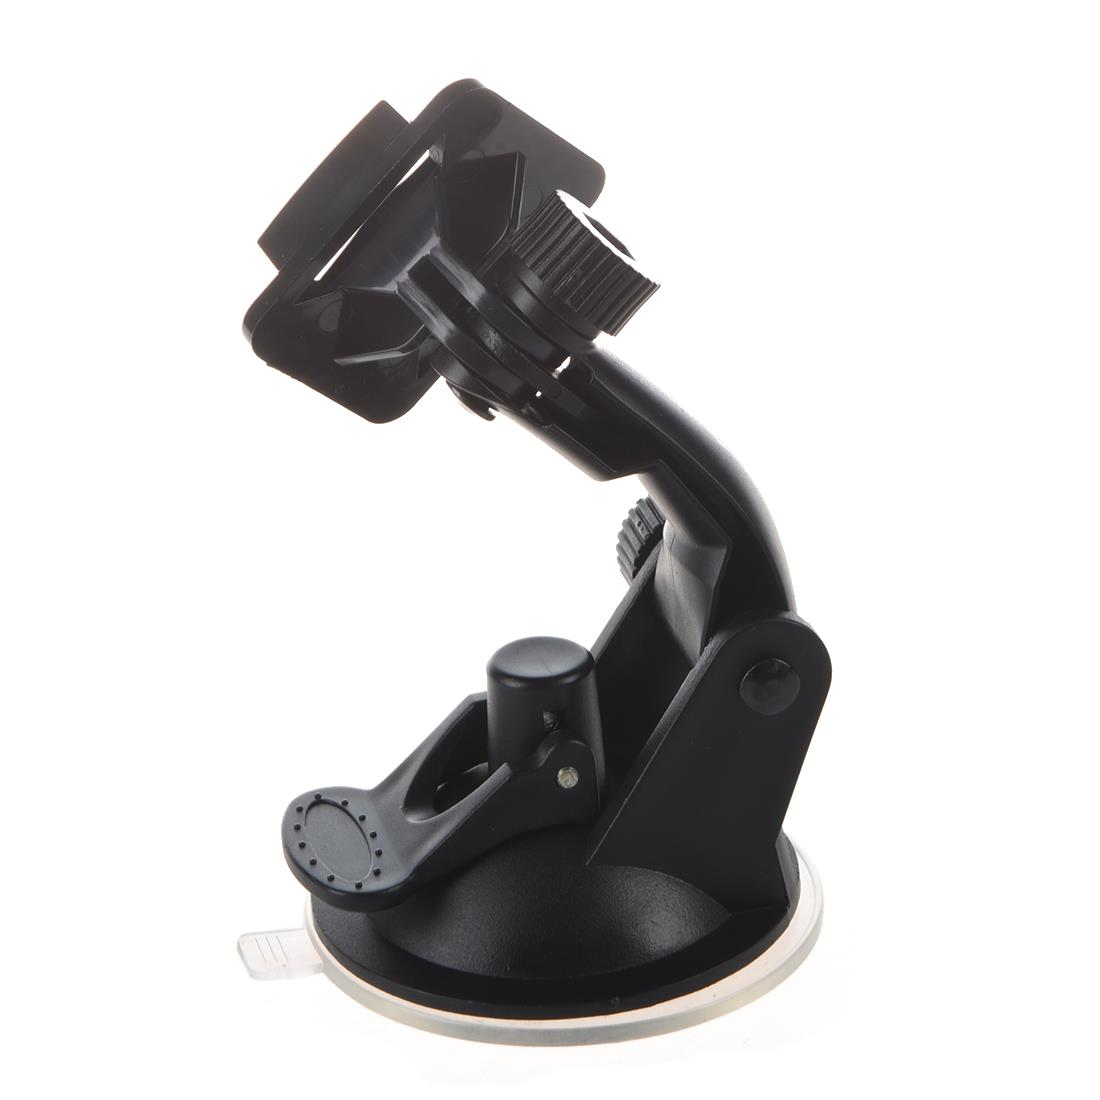 Swivel car suction cup support for Camera GoPro Hero 32